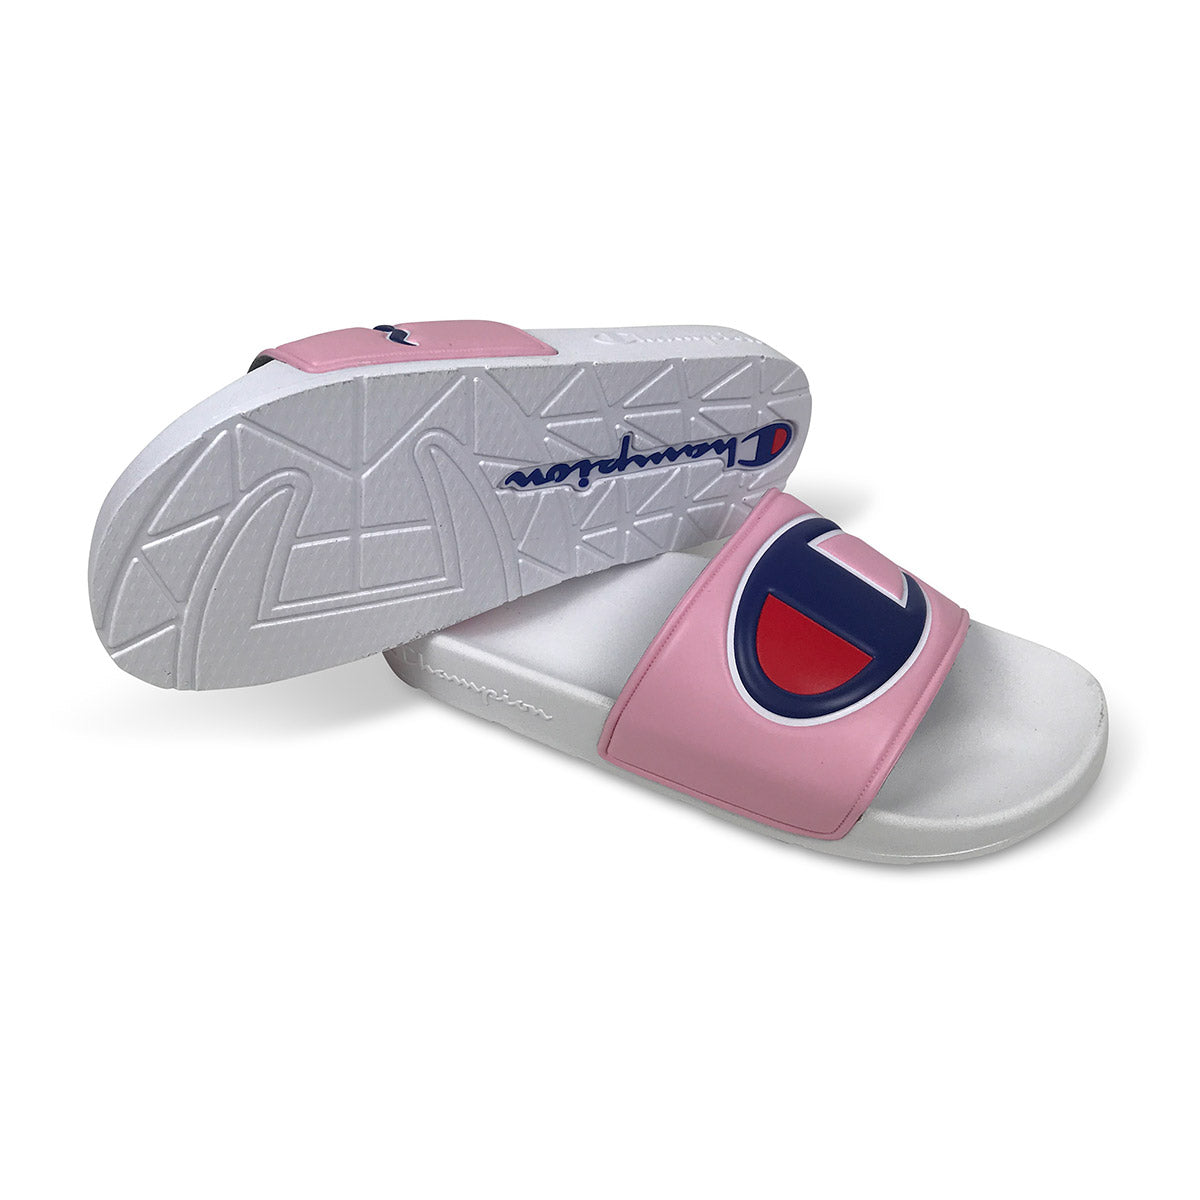 92f4311a6e1 Champion Monogram Slides - PremierVII · Champion